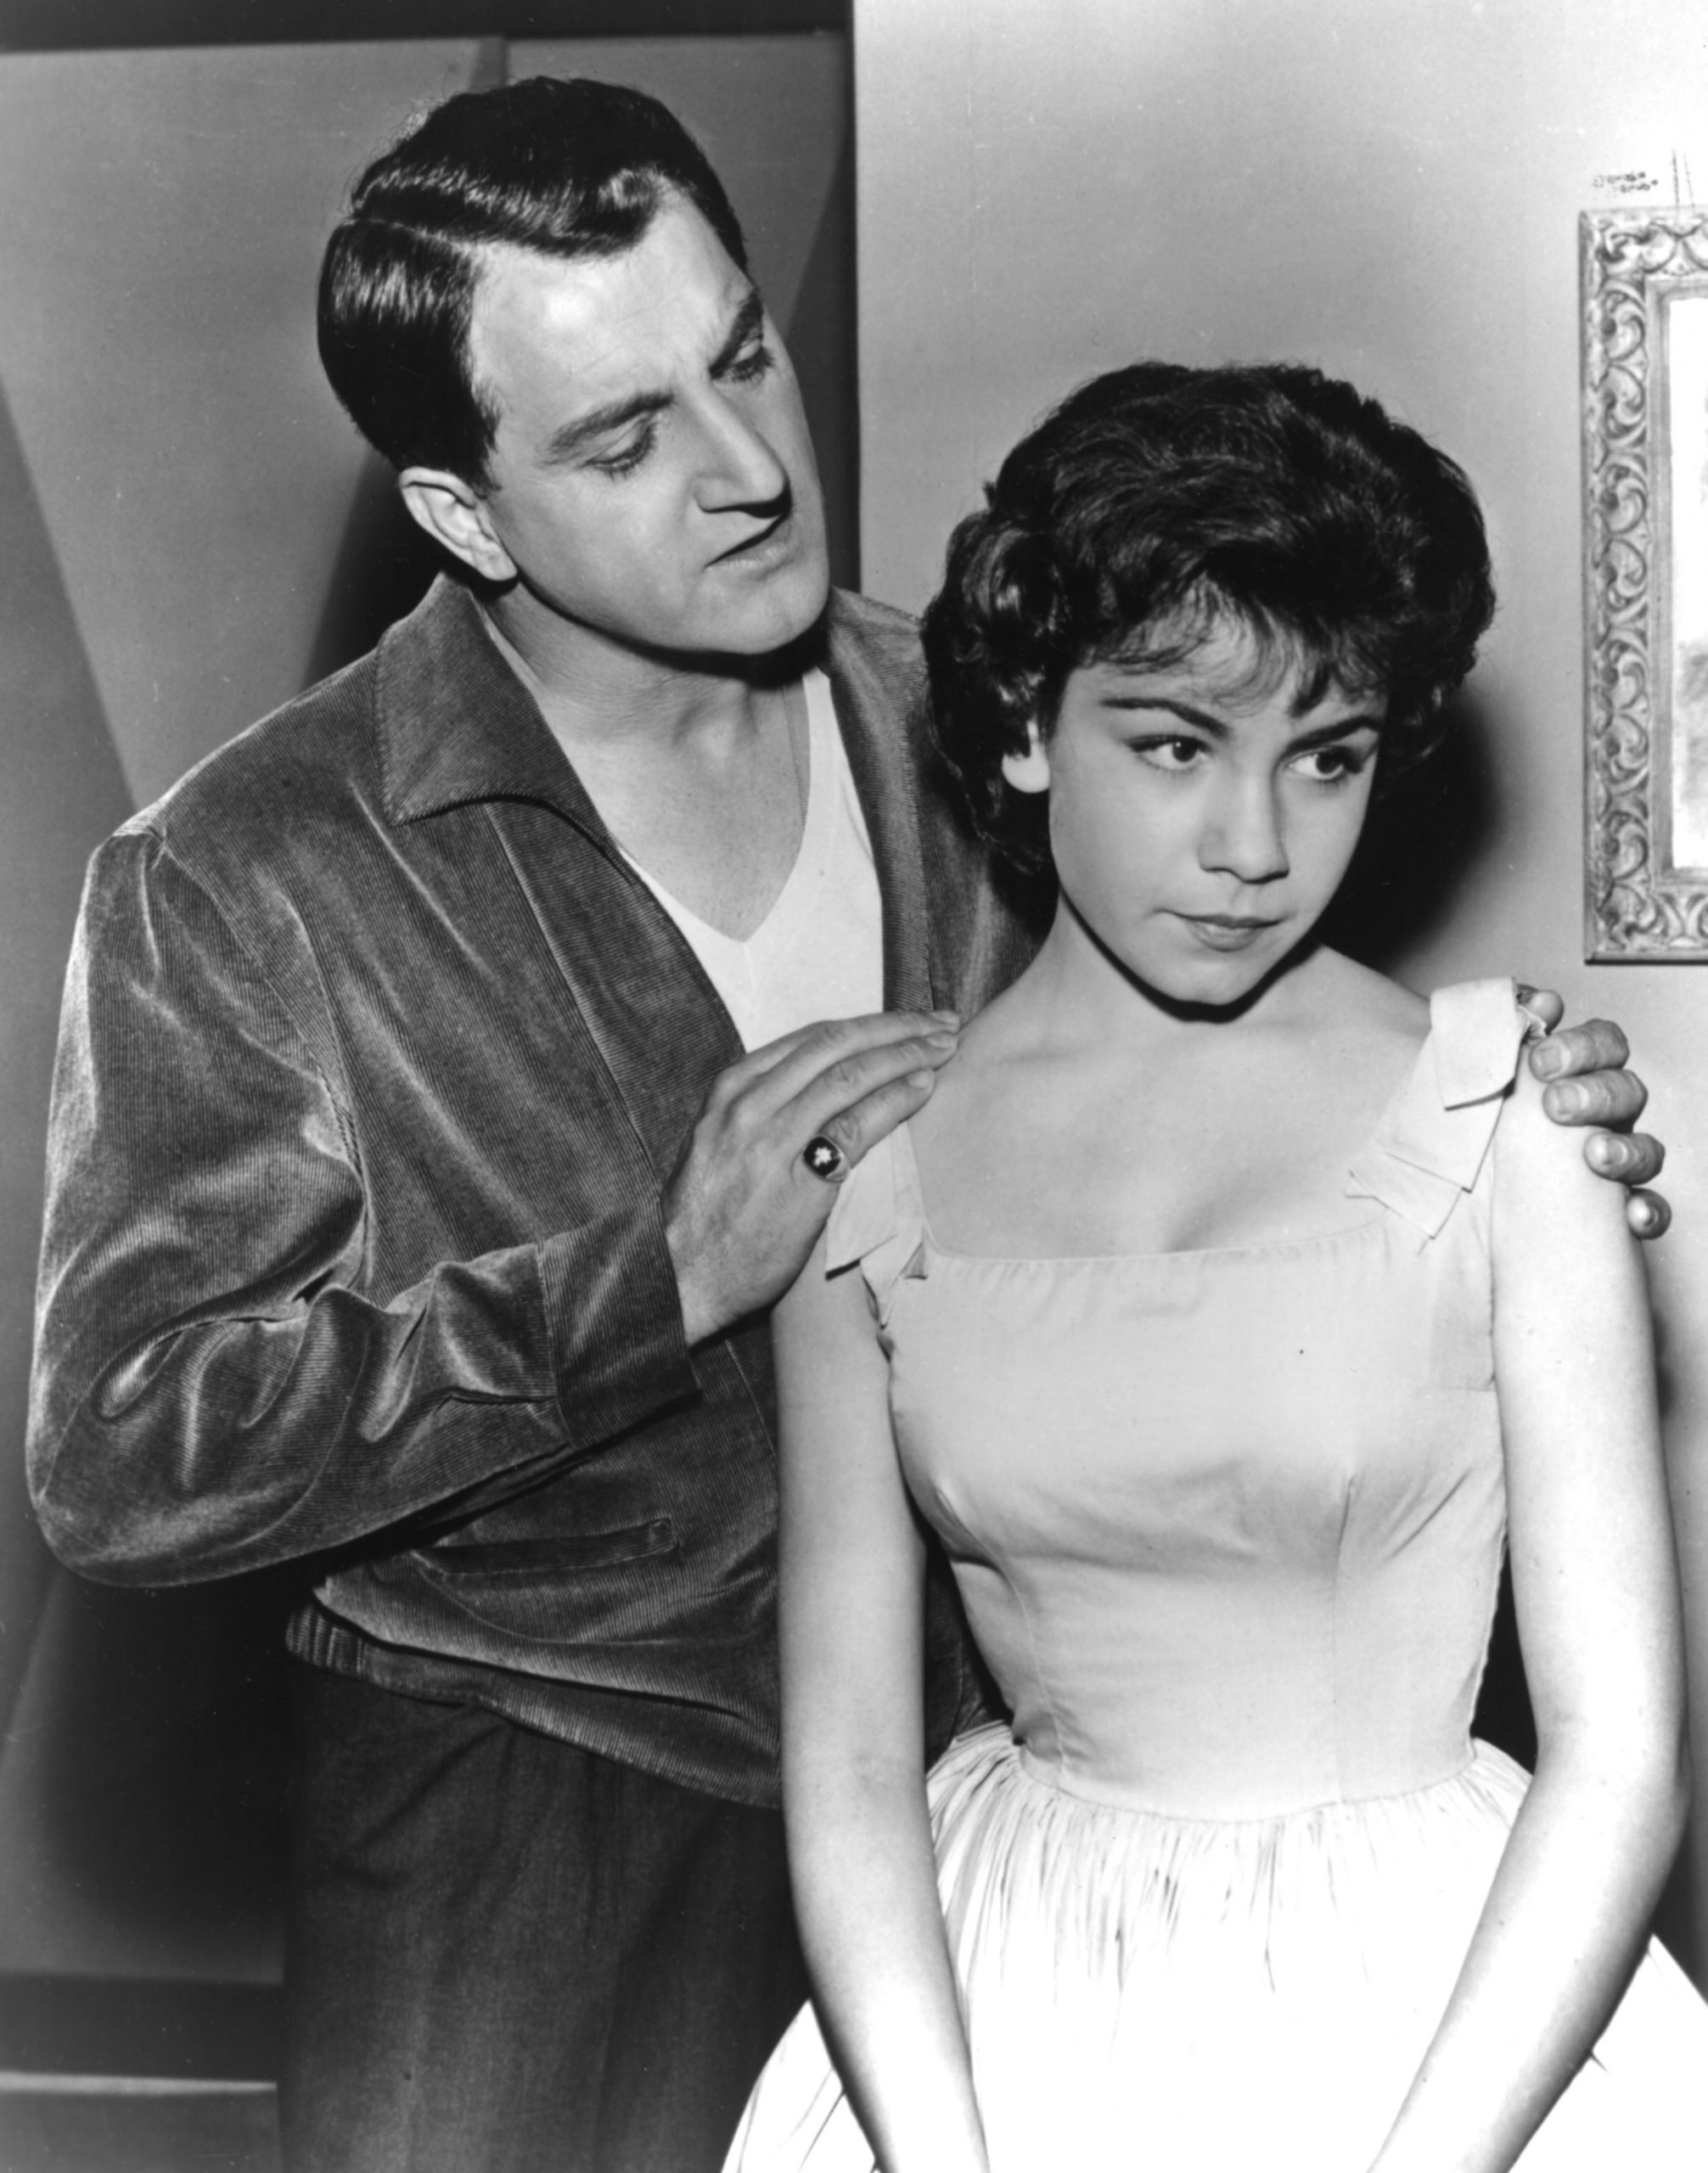 annette-funicello-danny-thomas-make-room-for-daddy